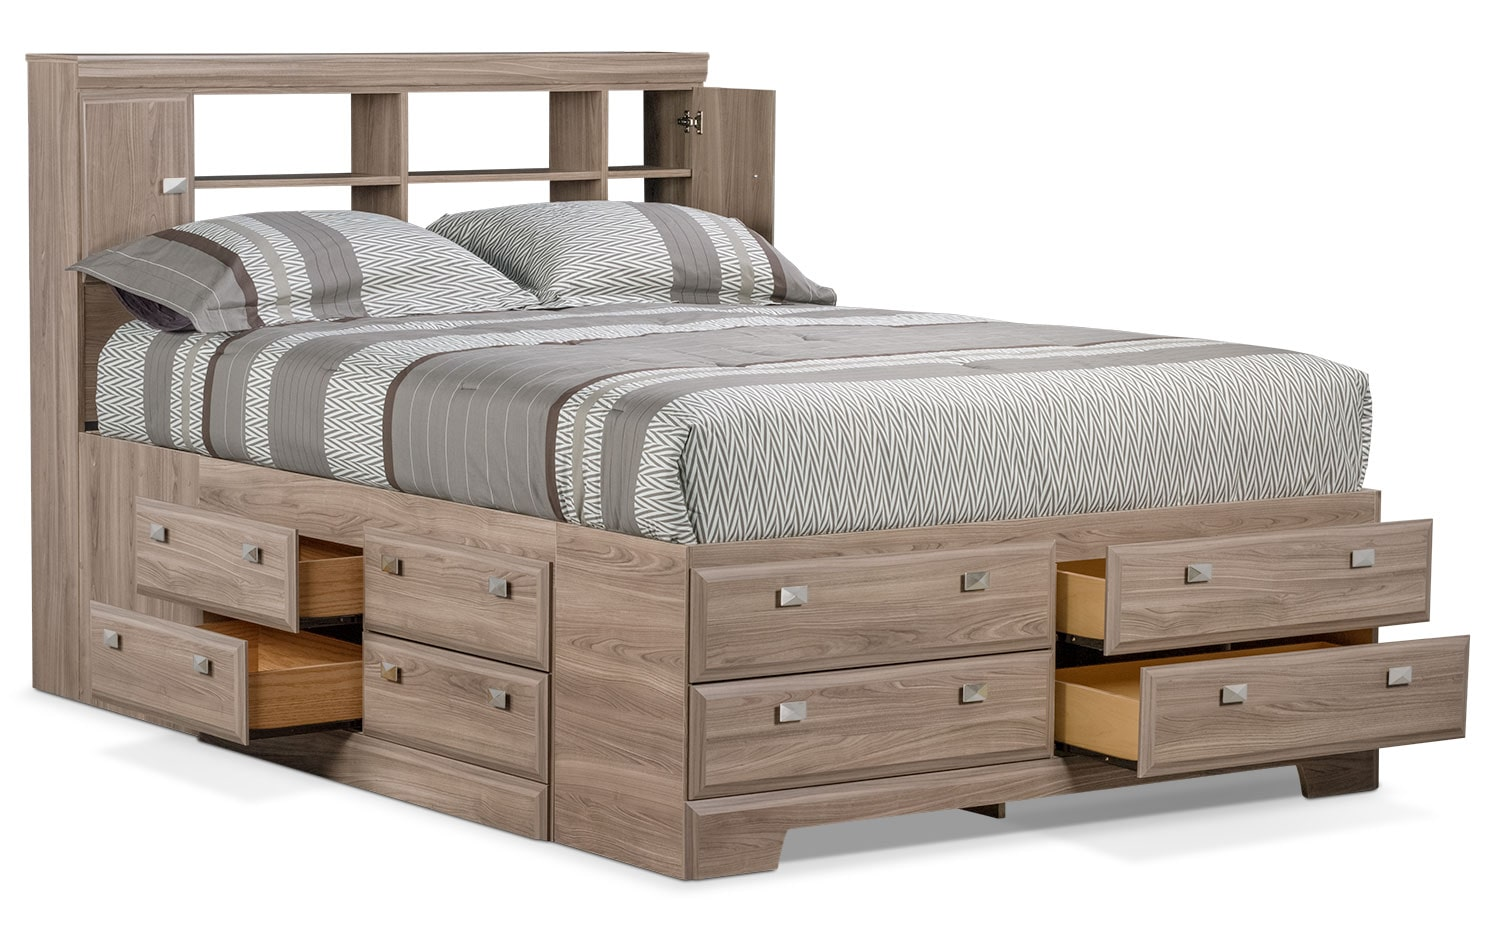 28 Bedroom Sets Furniture Aniston 8 Rental City Wood 8 Pc Bedroom Suite From R Amp T